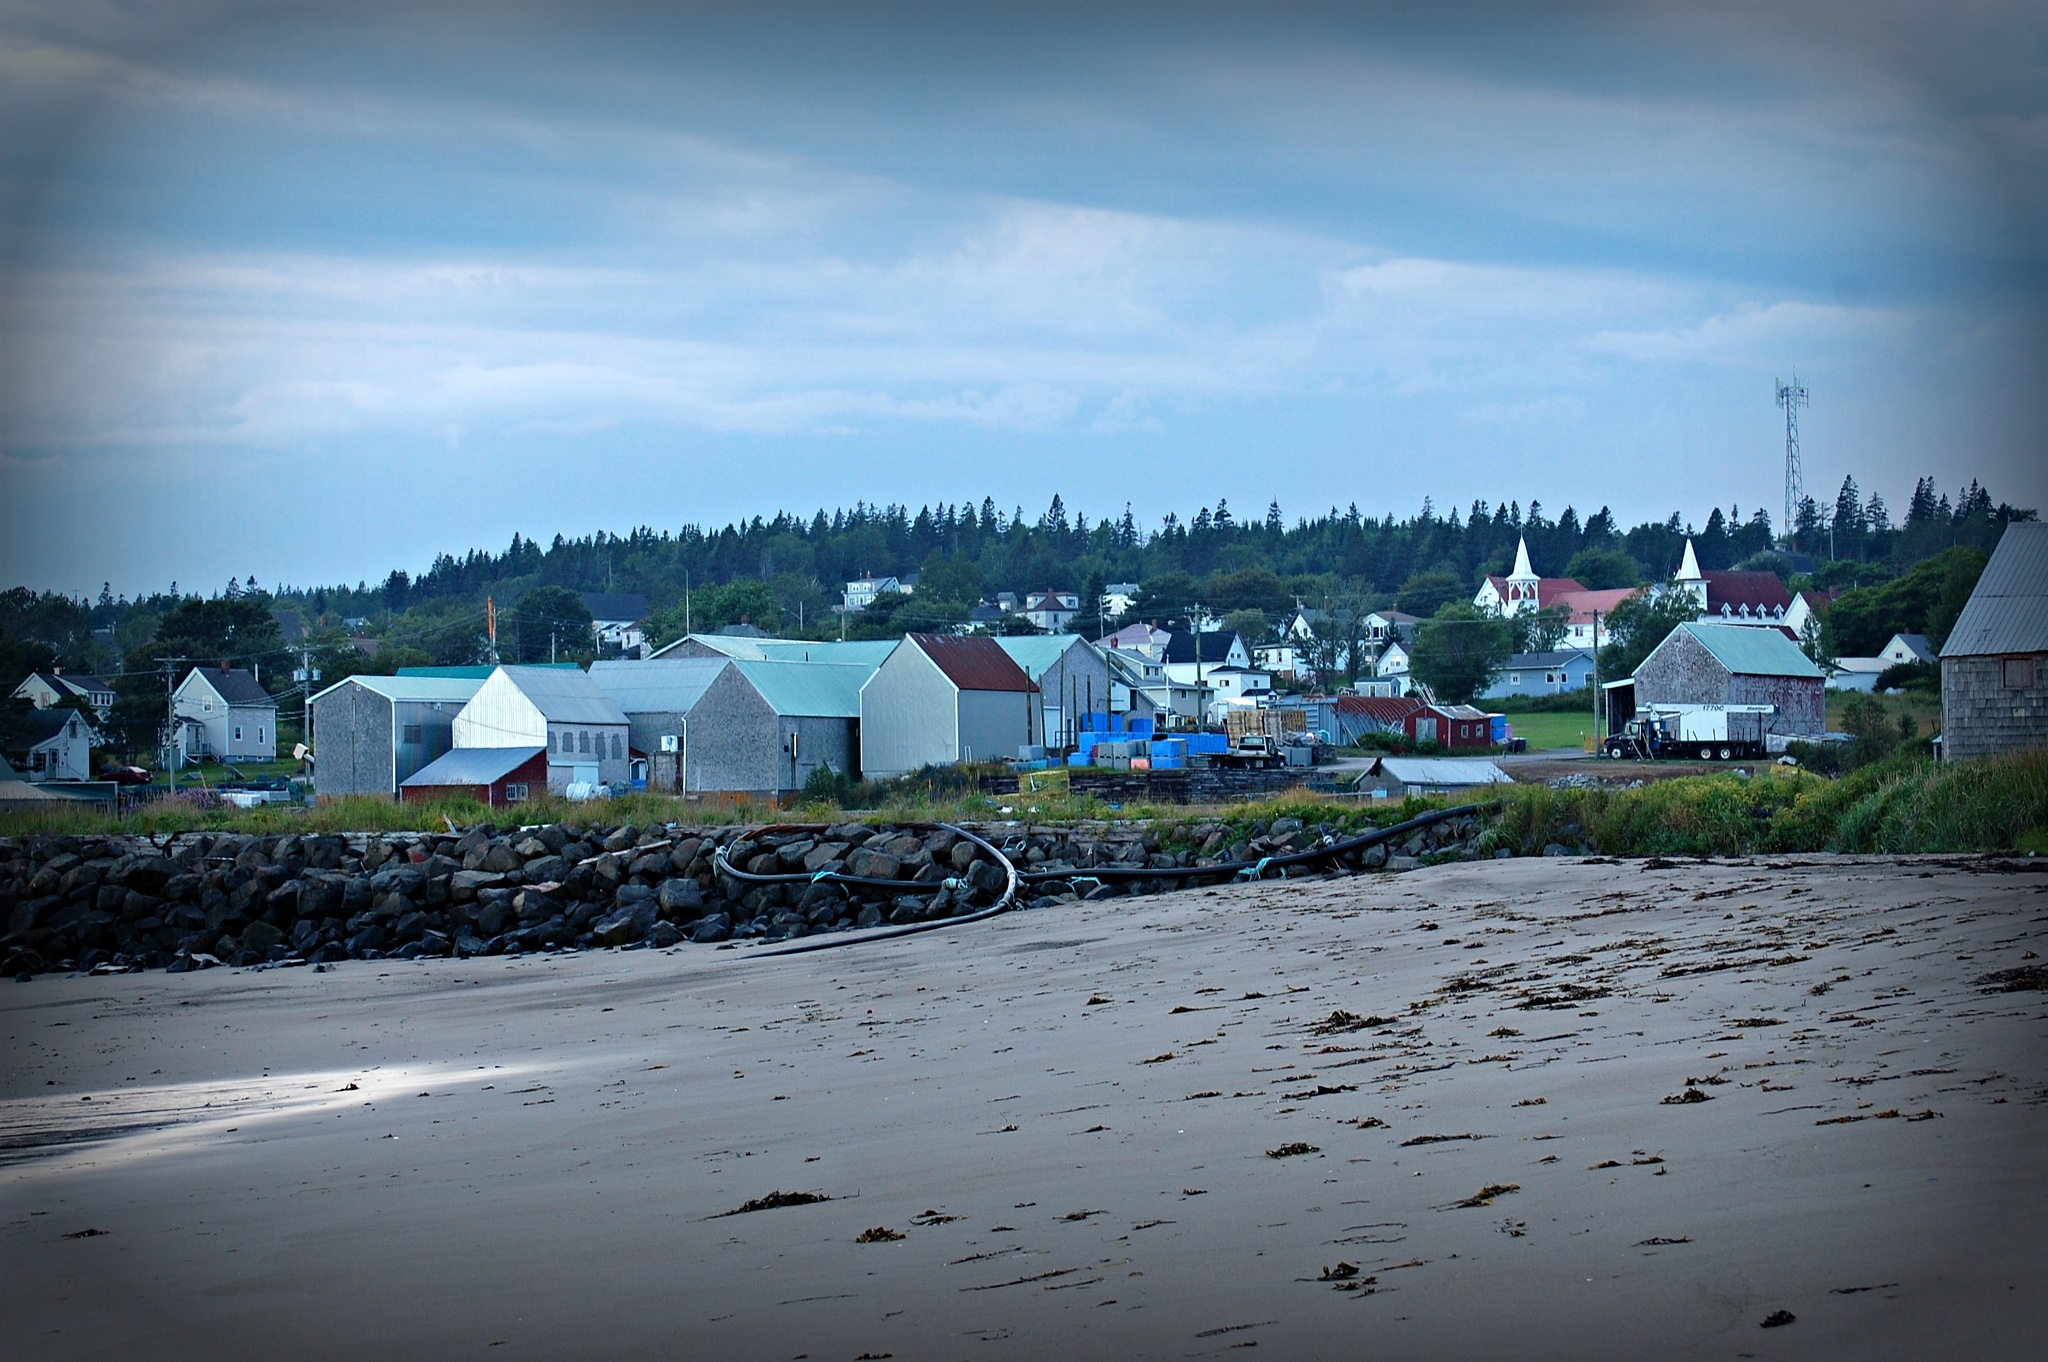 Seal's Cove Beach by Giggles79